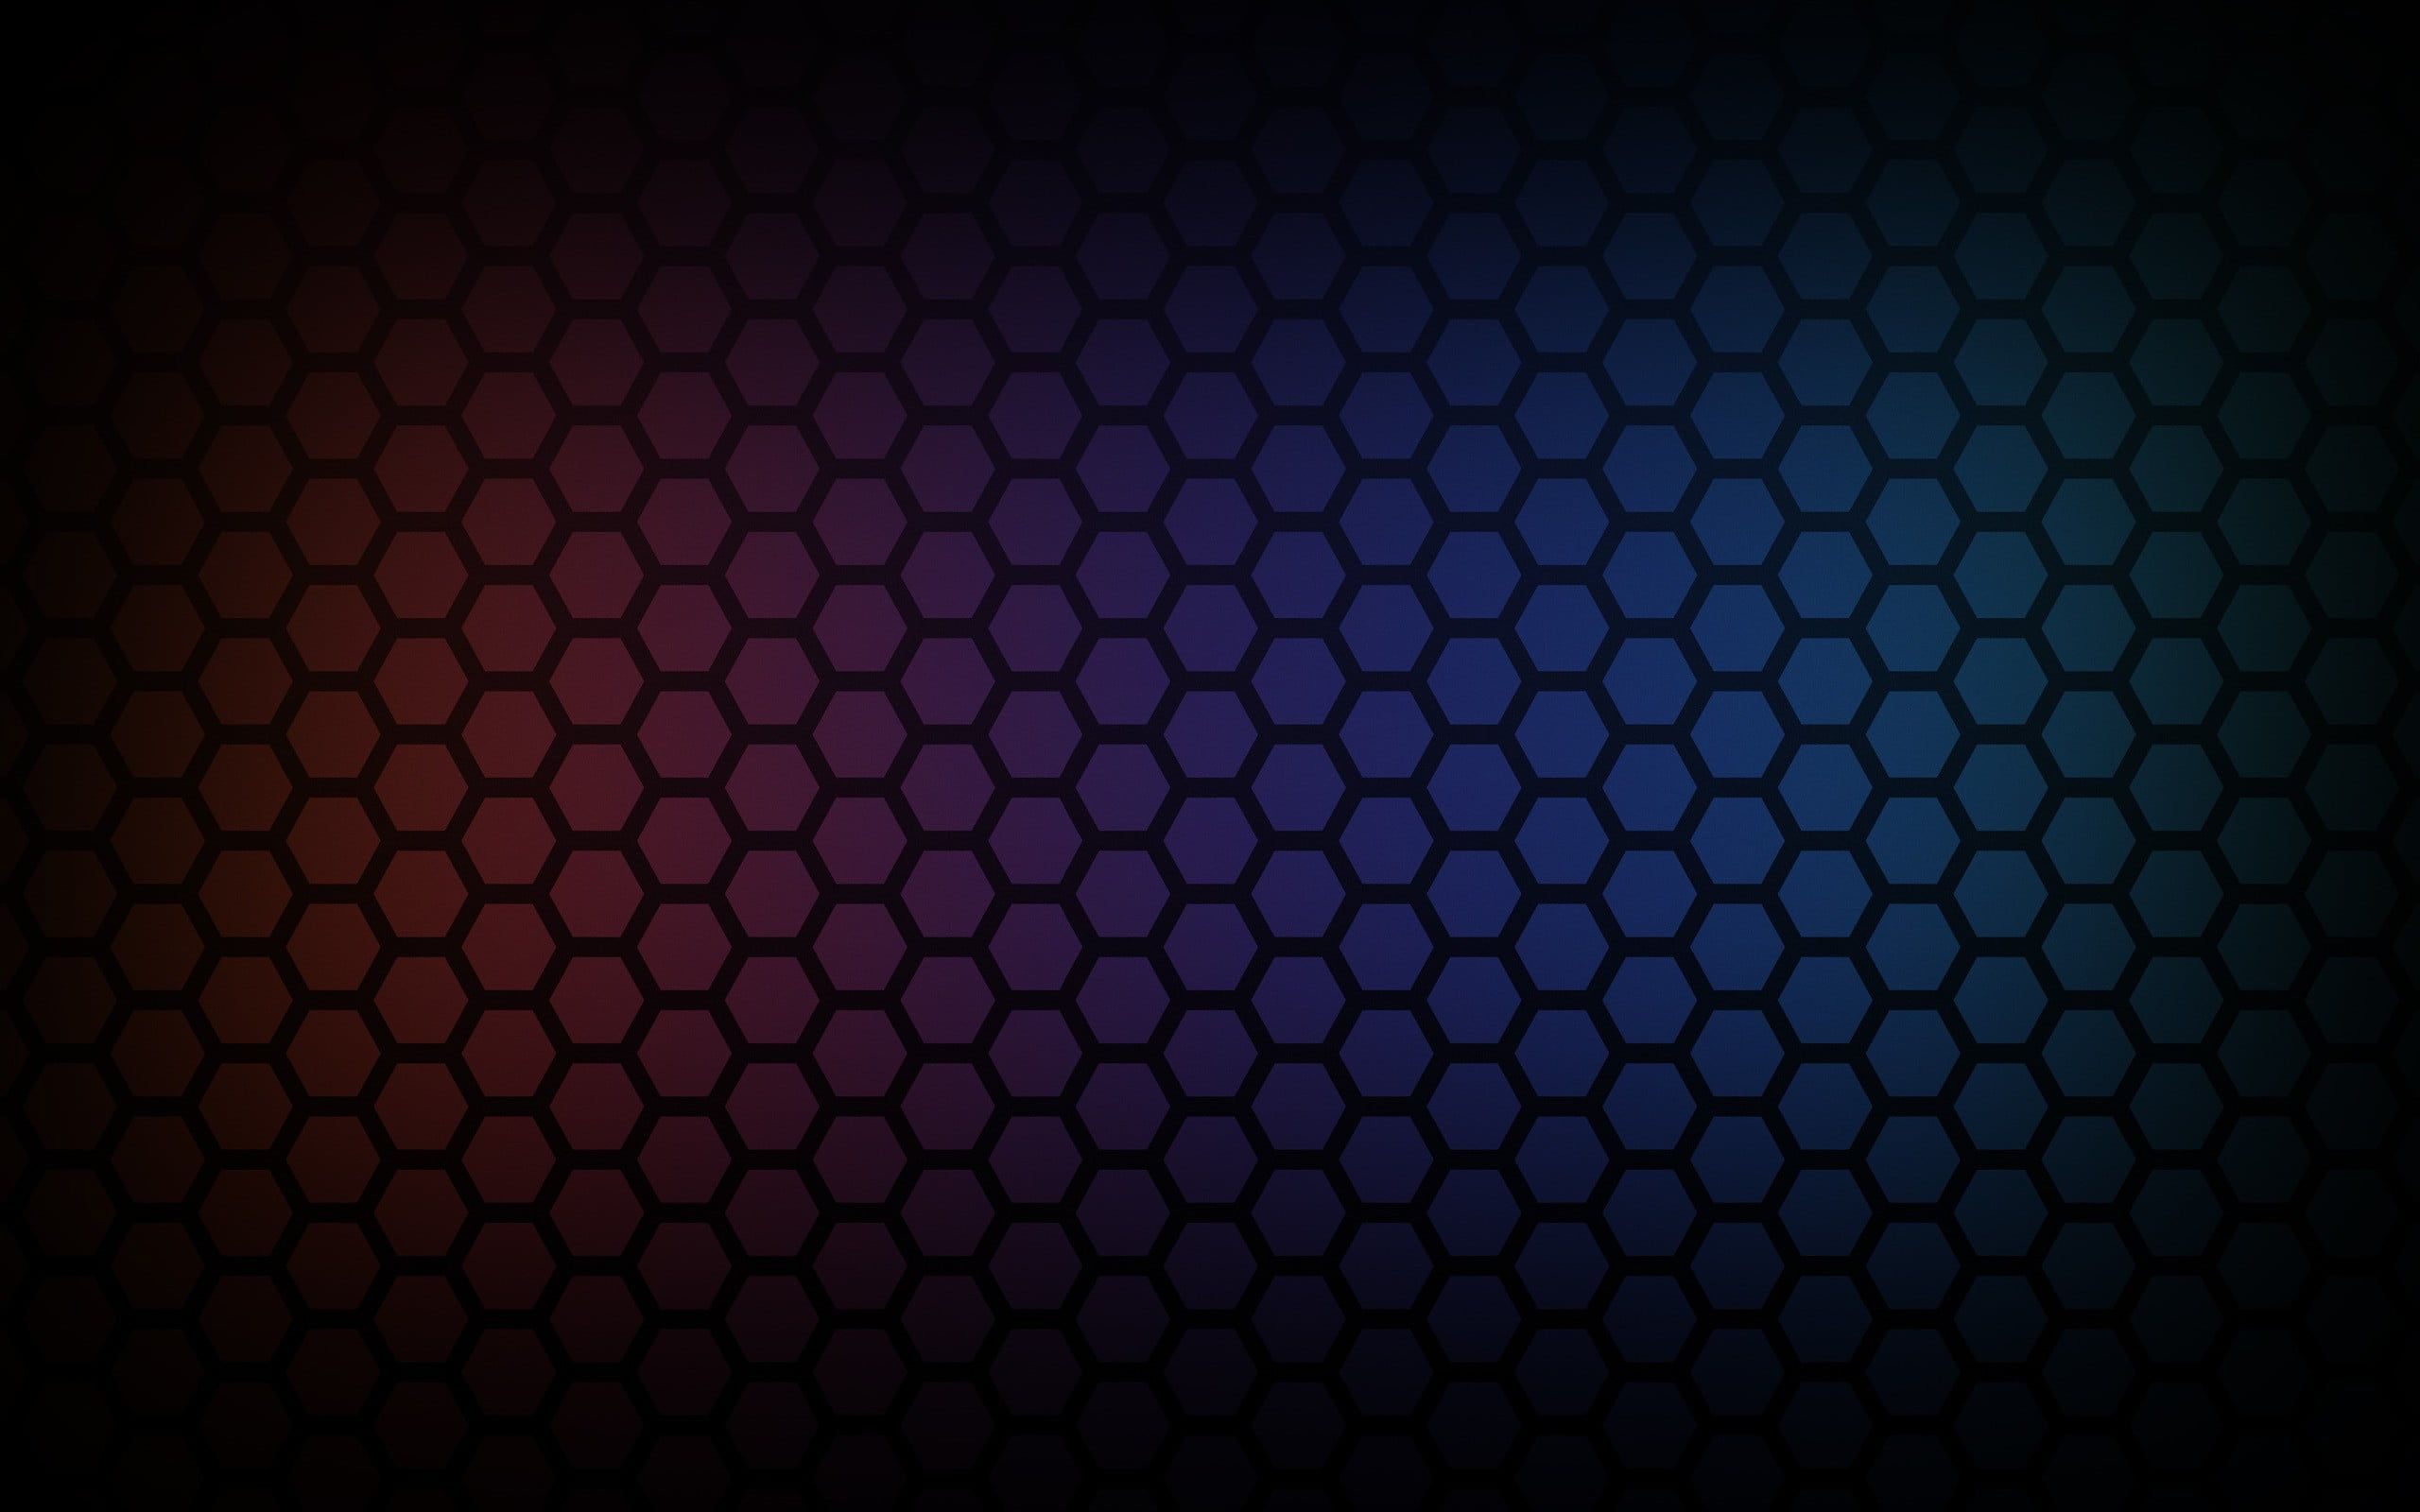 Black Honeycomb Graphic Wallpaper Hexagon Colorful Pattern Gradient Honeycombs Abstract Textured Graphic Wallpaper Honeycomb Wallpaper Pattern Wallpaper